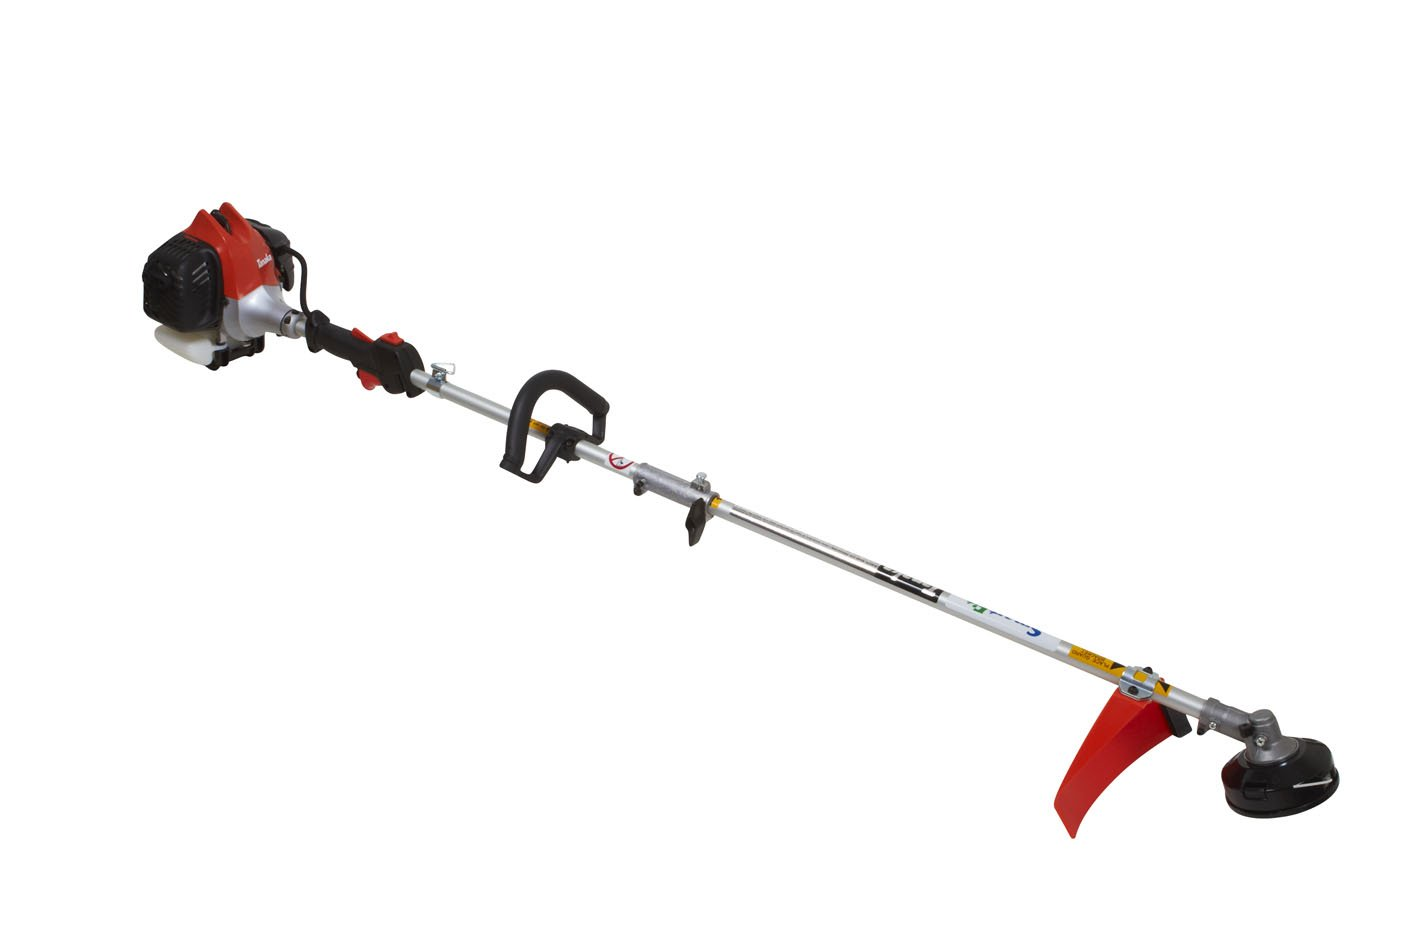 Tanaka TCG24EBDP 2-Cycle Split Shaft Gas String Commercial Grade Trimmer, 23.9cc